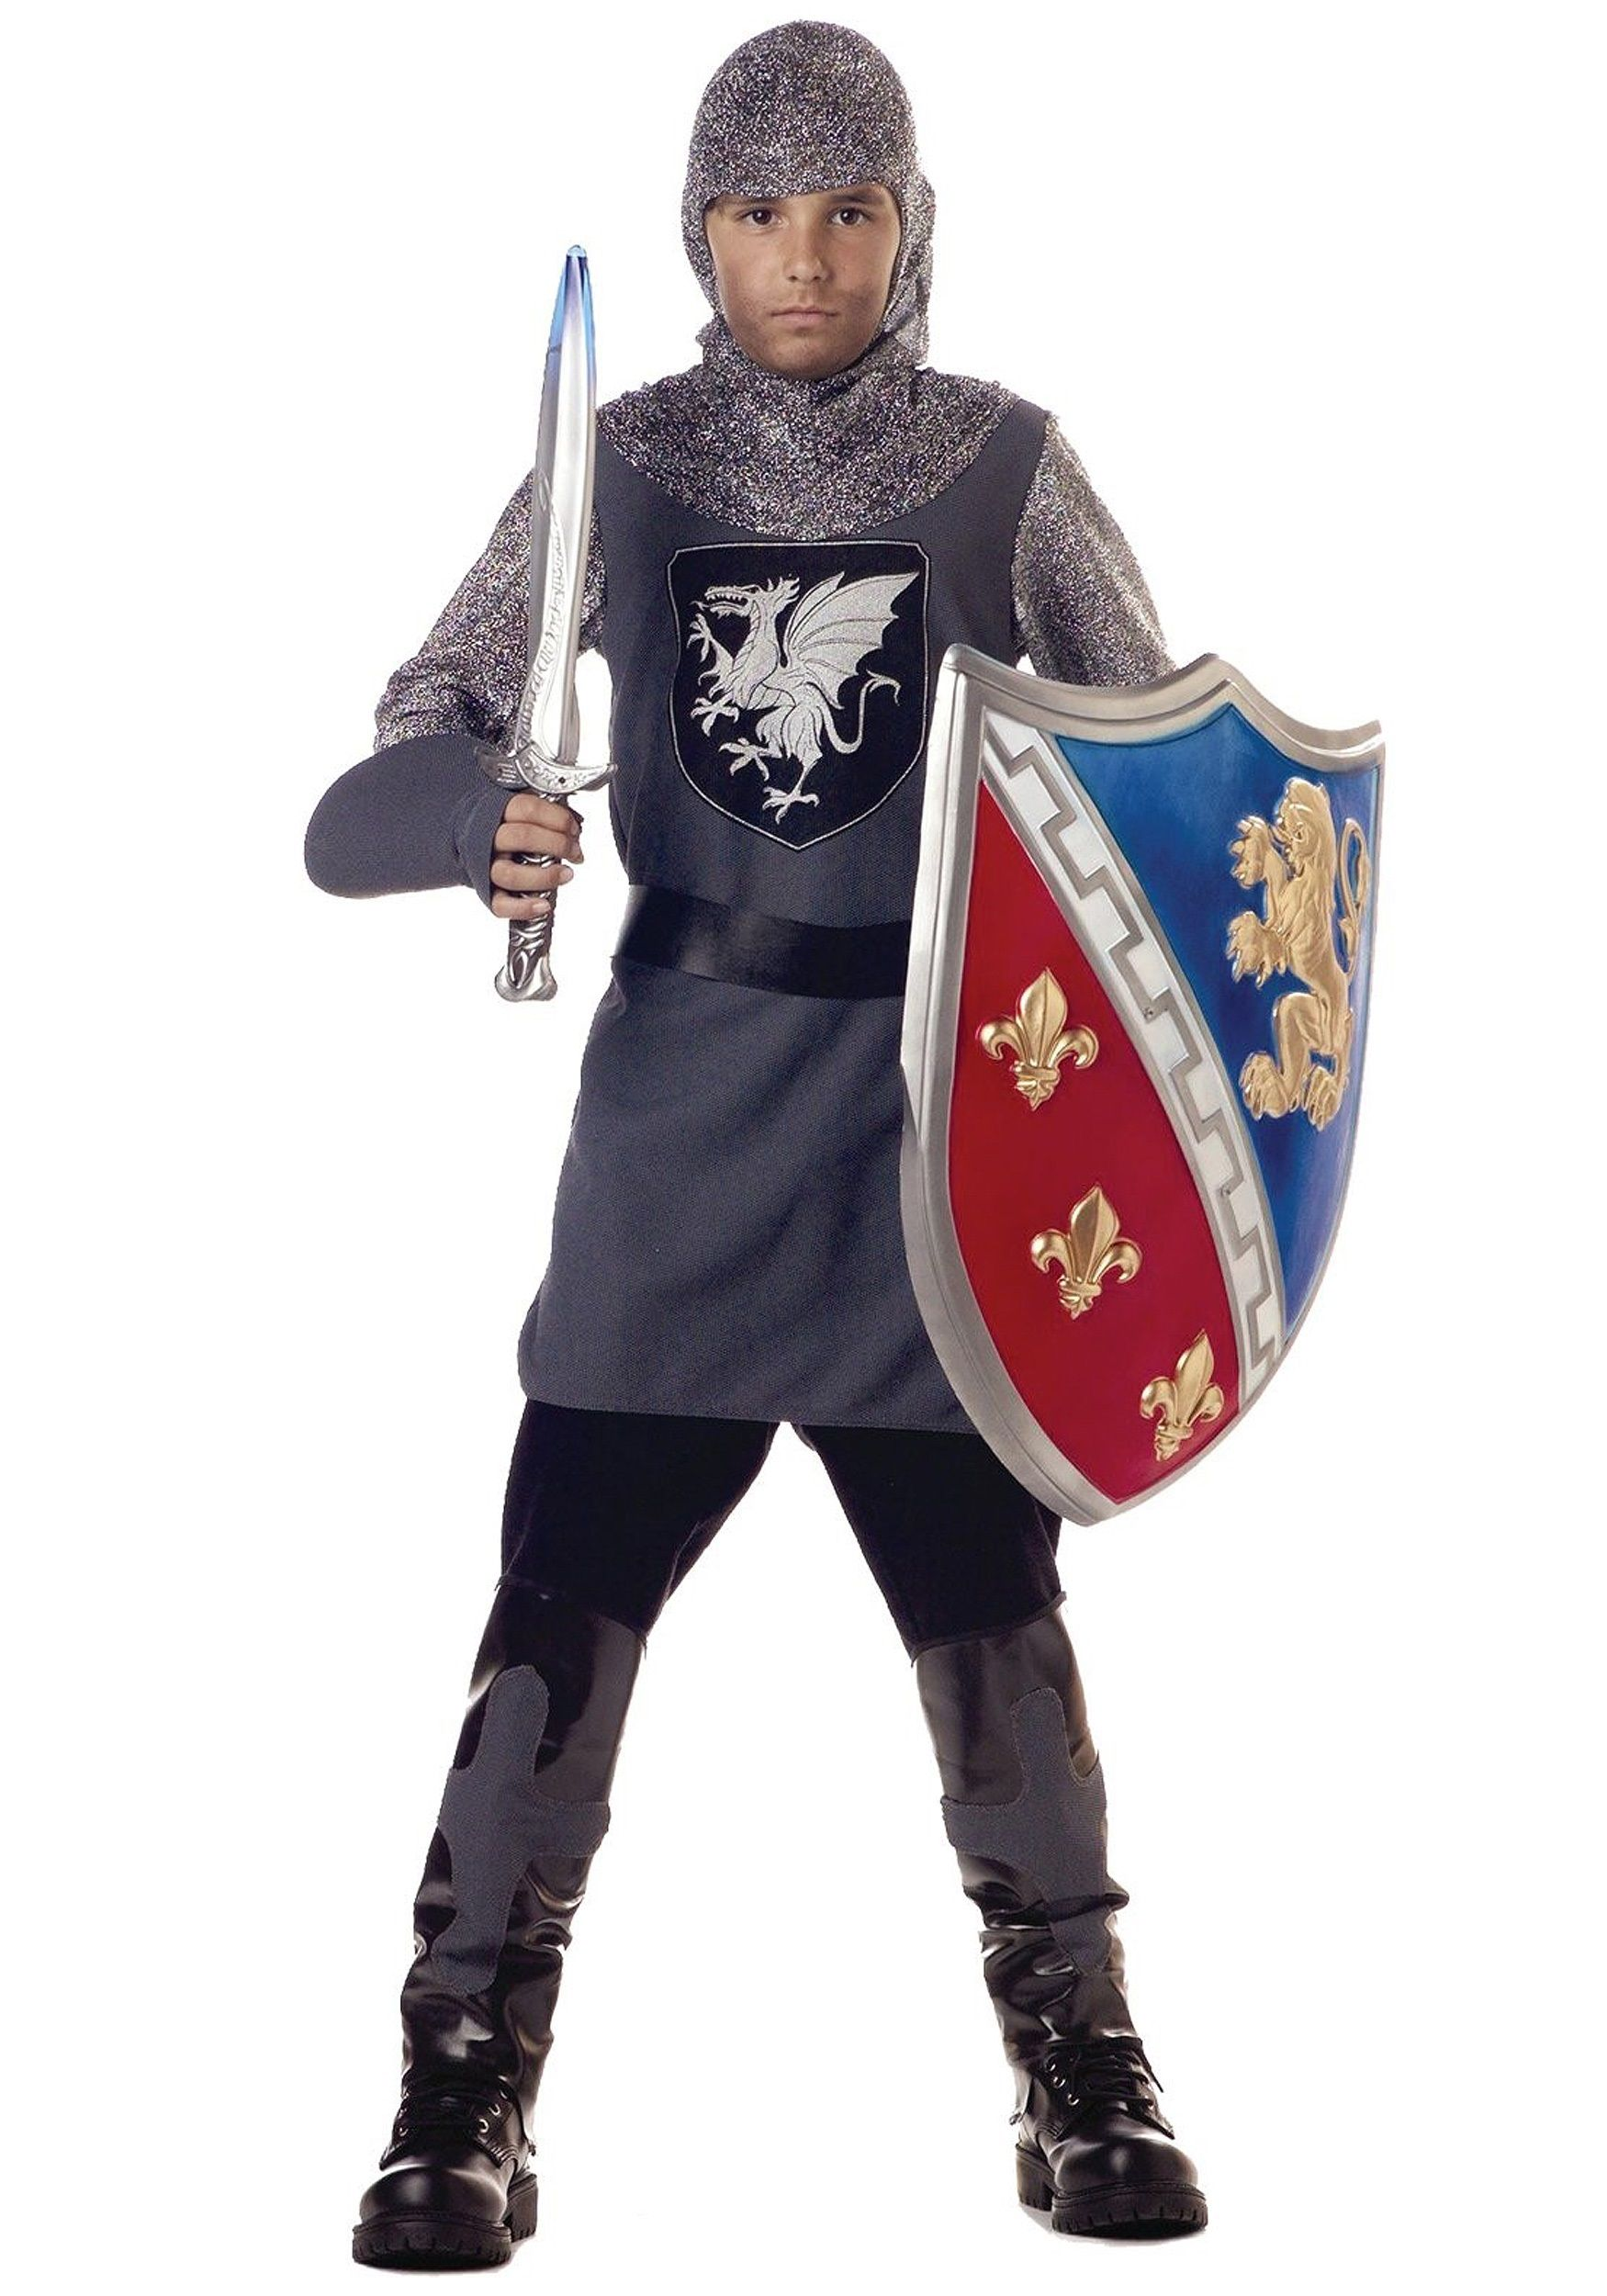 valiant knight child costume outfit includes a grey tunic with faux chainmail sleeves dragon emblem grey gloves faux chainmail hood and